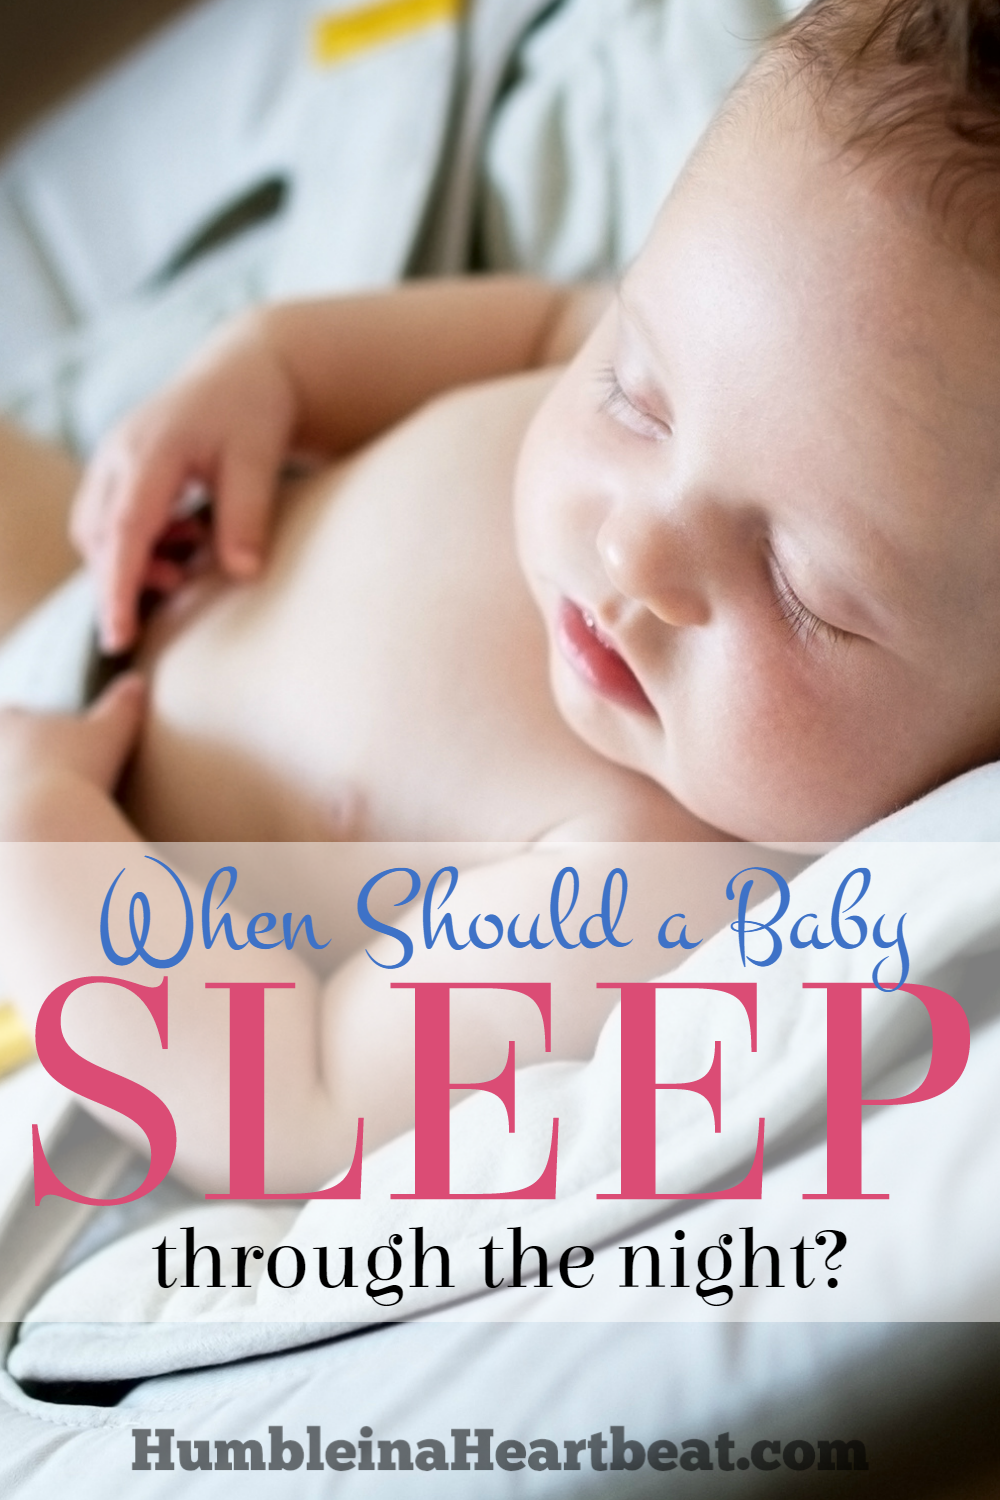 There's a lot of pressure to get your baby to sleep through the night by 3 or 4 months, isn't there? Is it really necessary to get your baby to sleep through the night during their first year? Find out the best approach here.